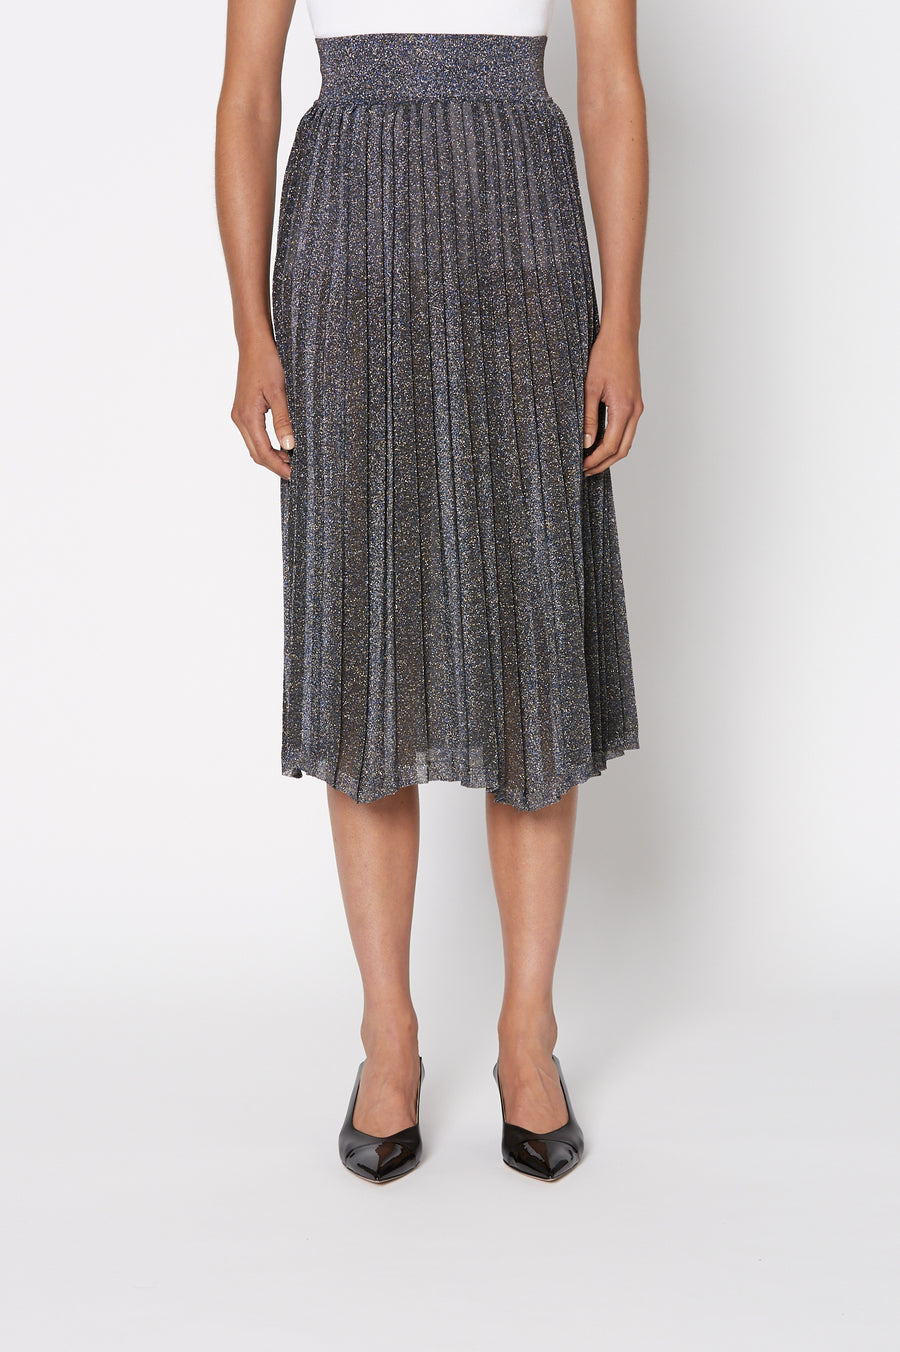 Tinsel Pleat Skirt, voluminous pleats, falls just below the knee, elastic waistband sits high on waist, color Navy